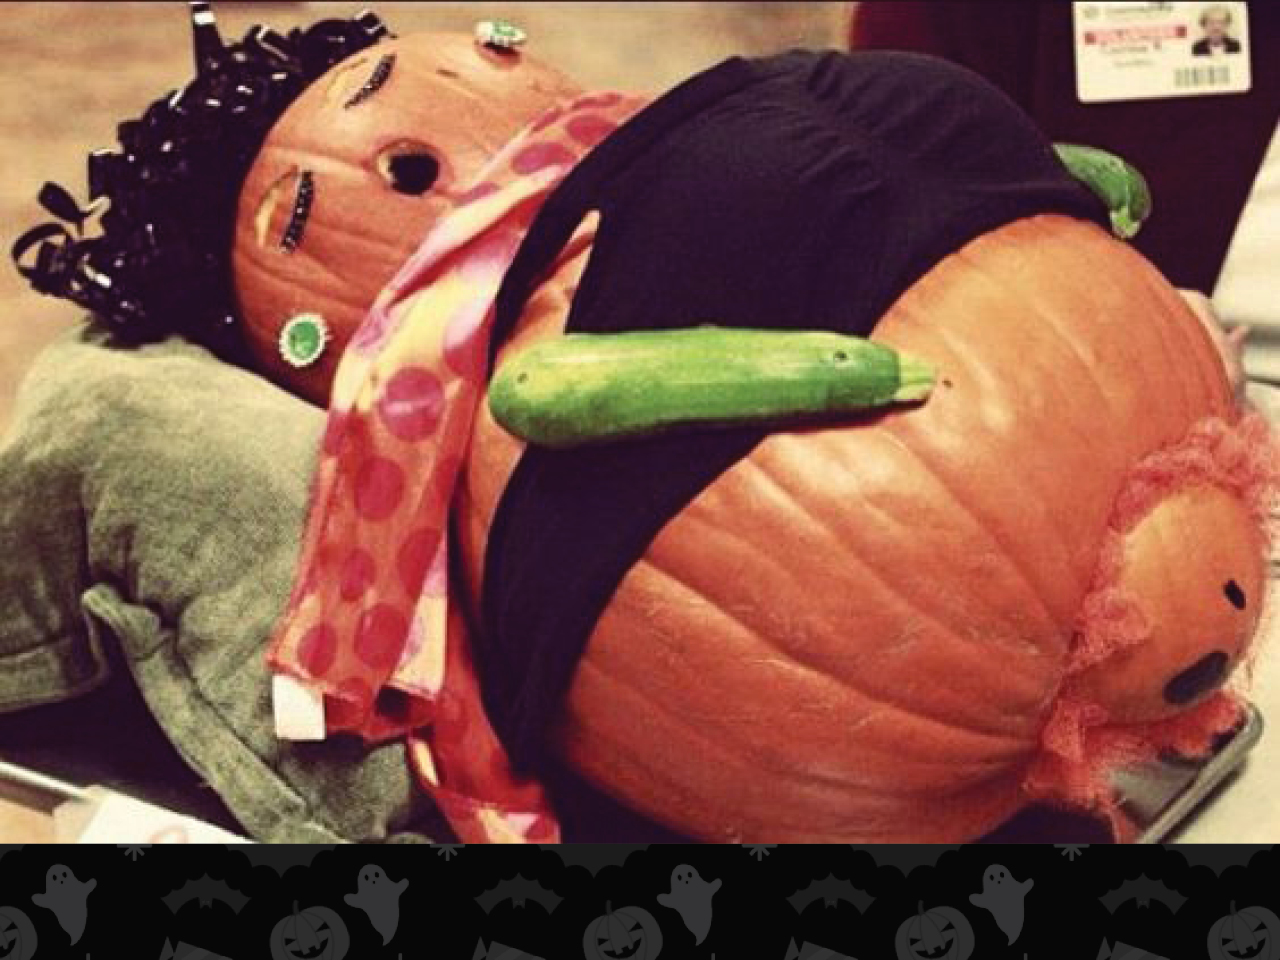 pumpkin carved as pregnant woman with zucchini arms and giving birth